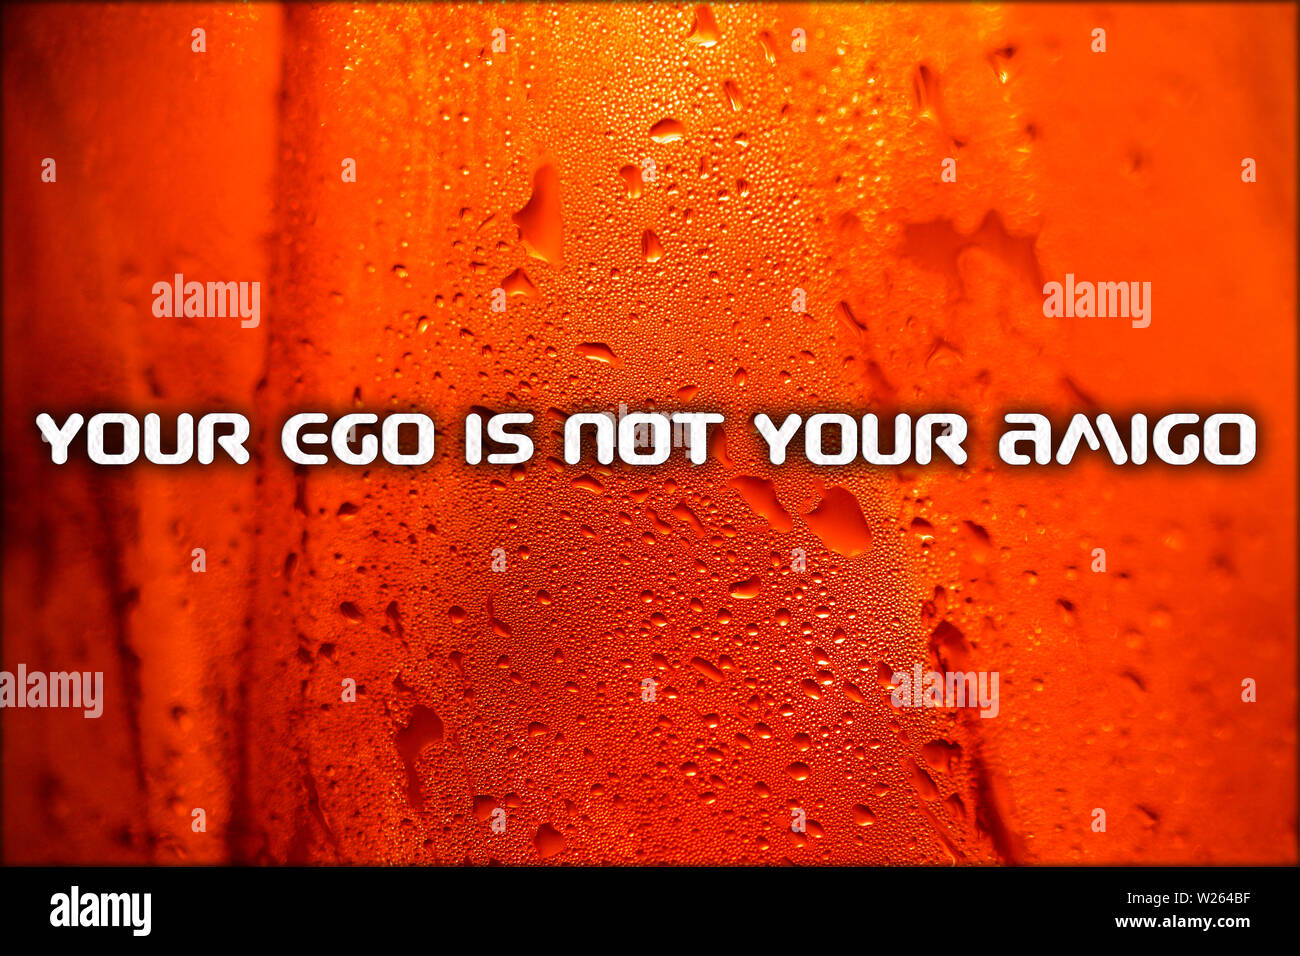 Text your ego is not you amigo quote in red liquid drops macro background - Stock Image